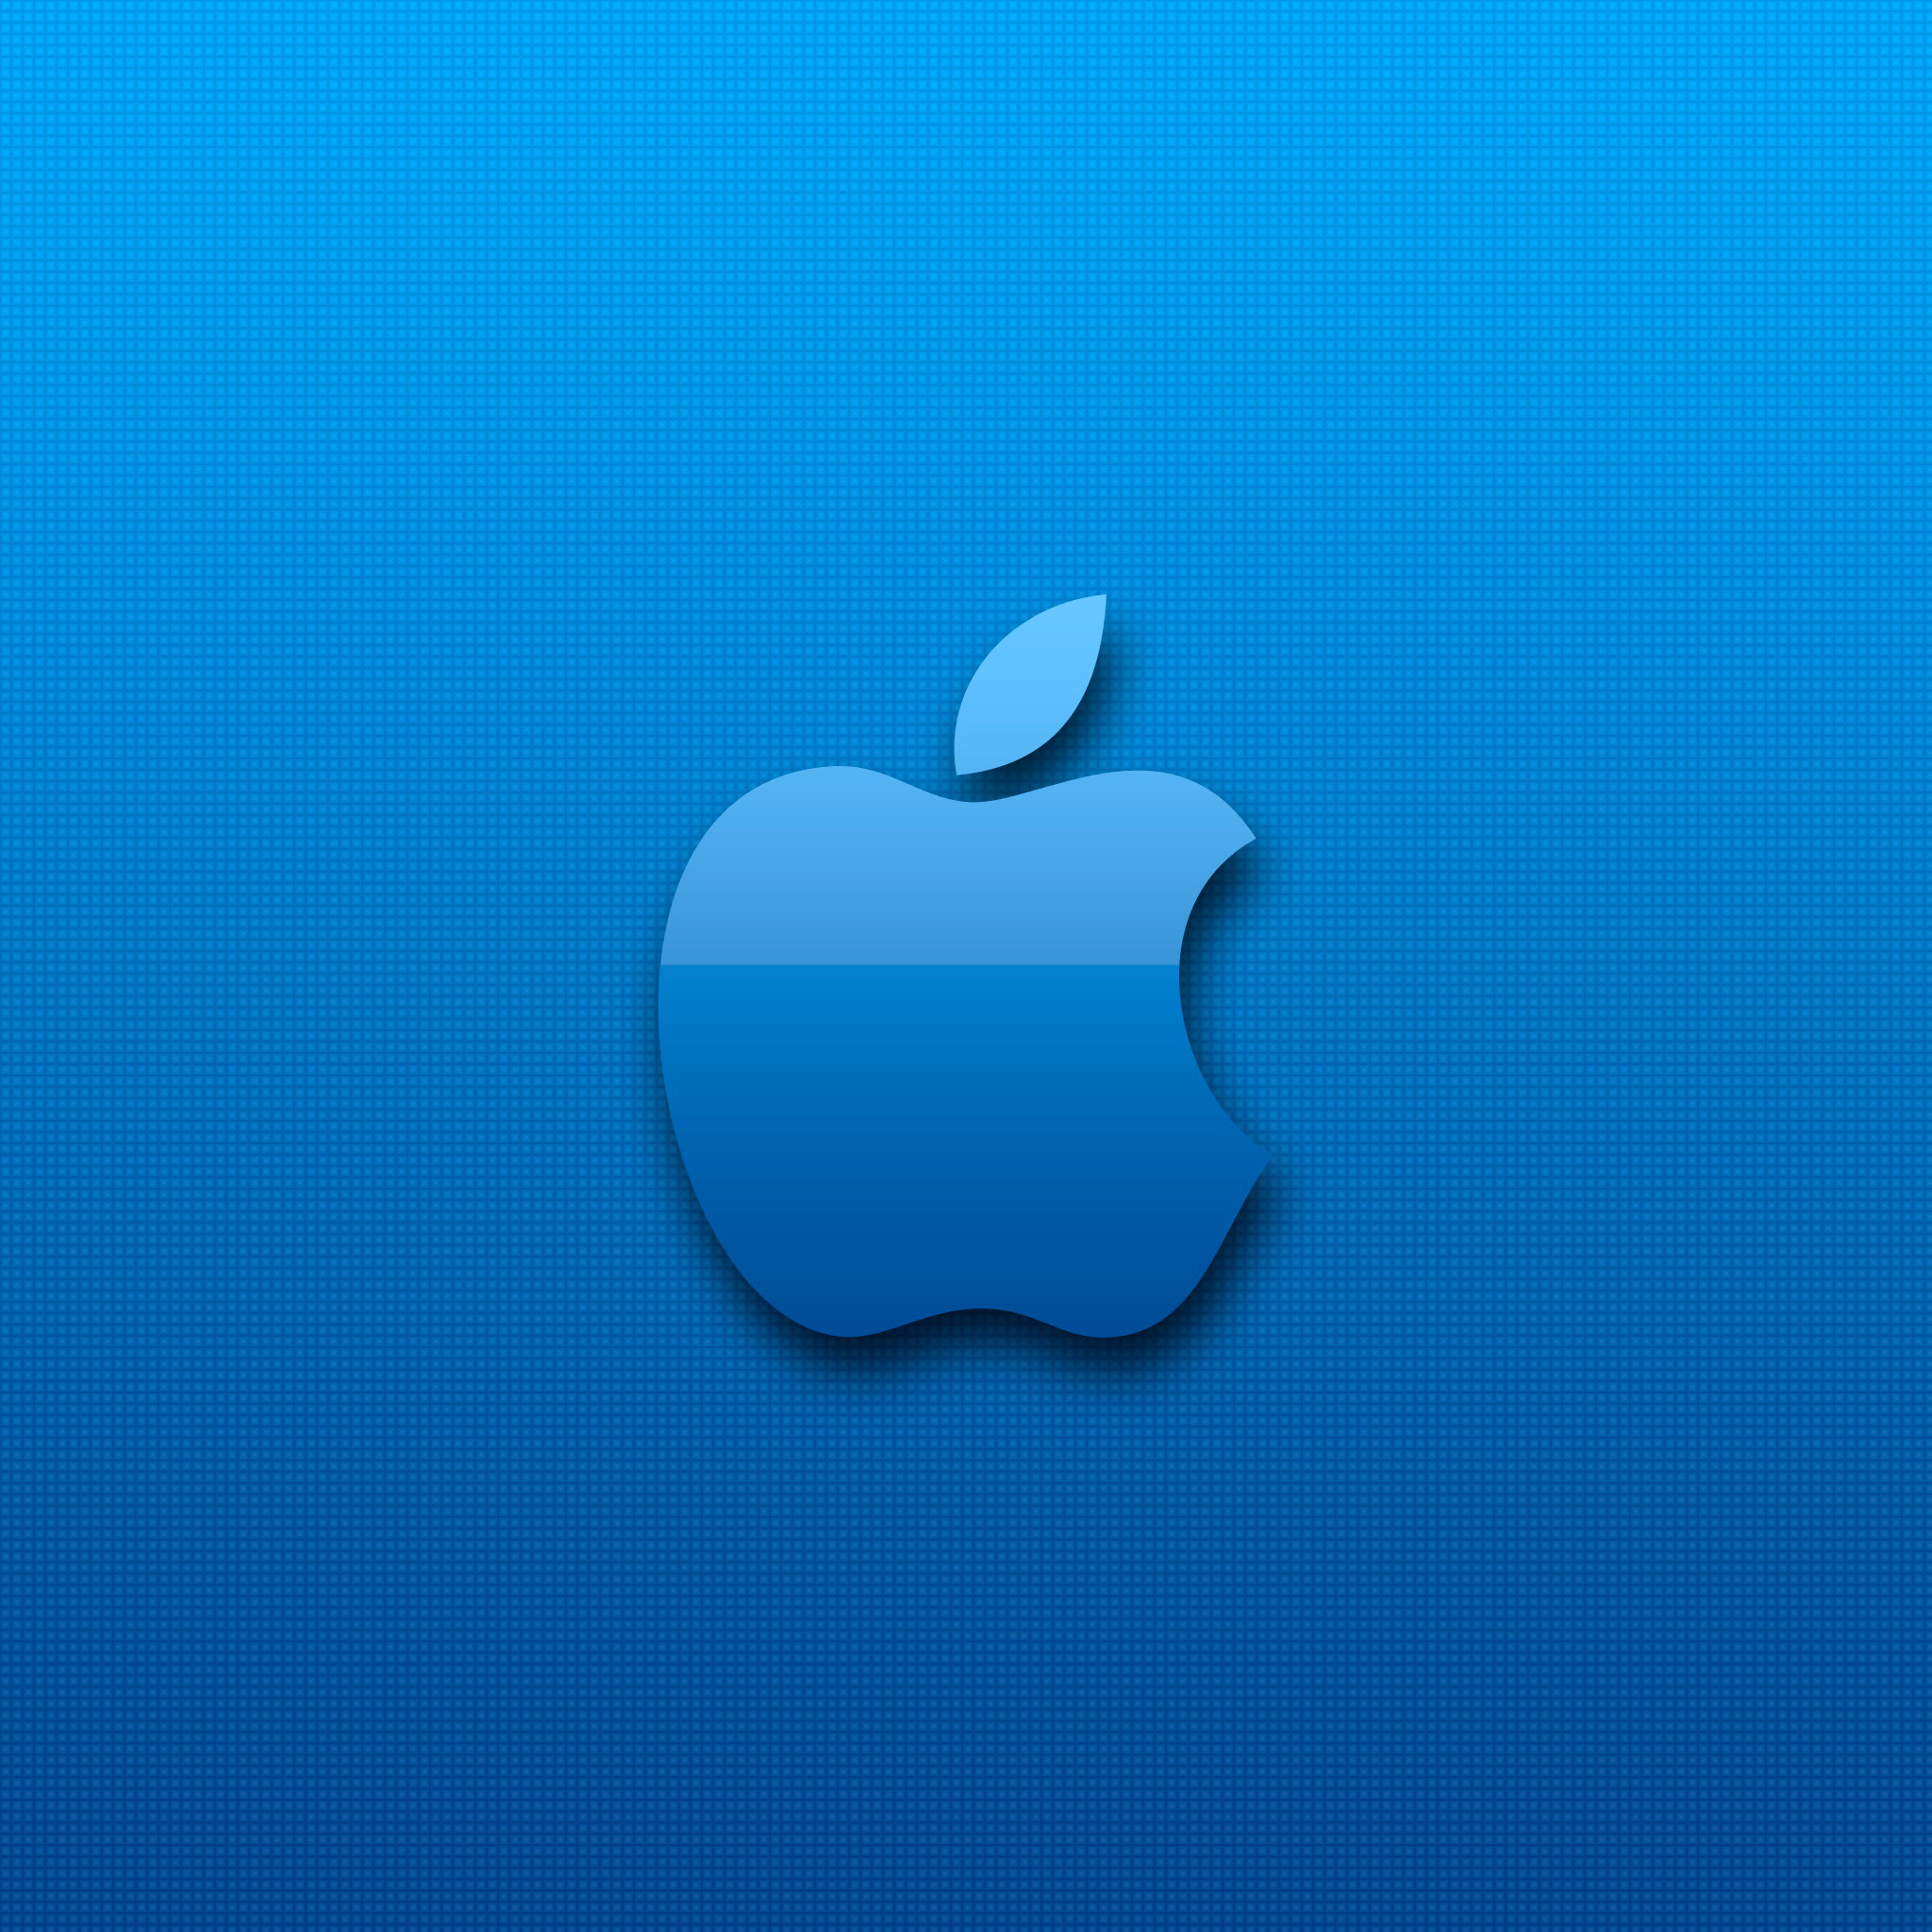 2048x2048 Blue-Apple-3Wallpapers-iPad-Retina